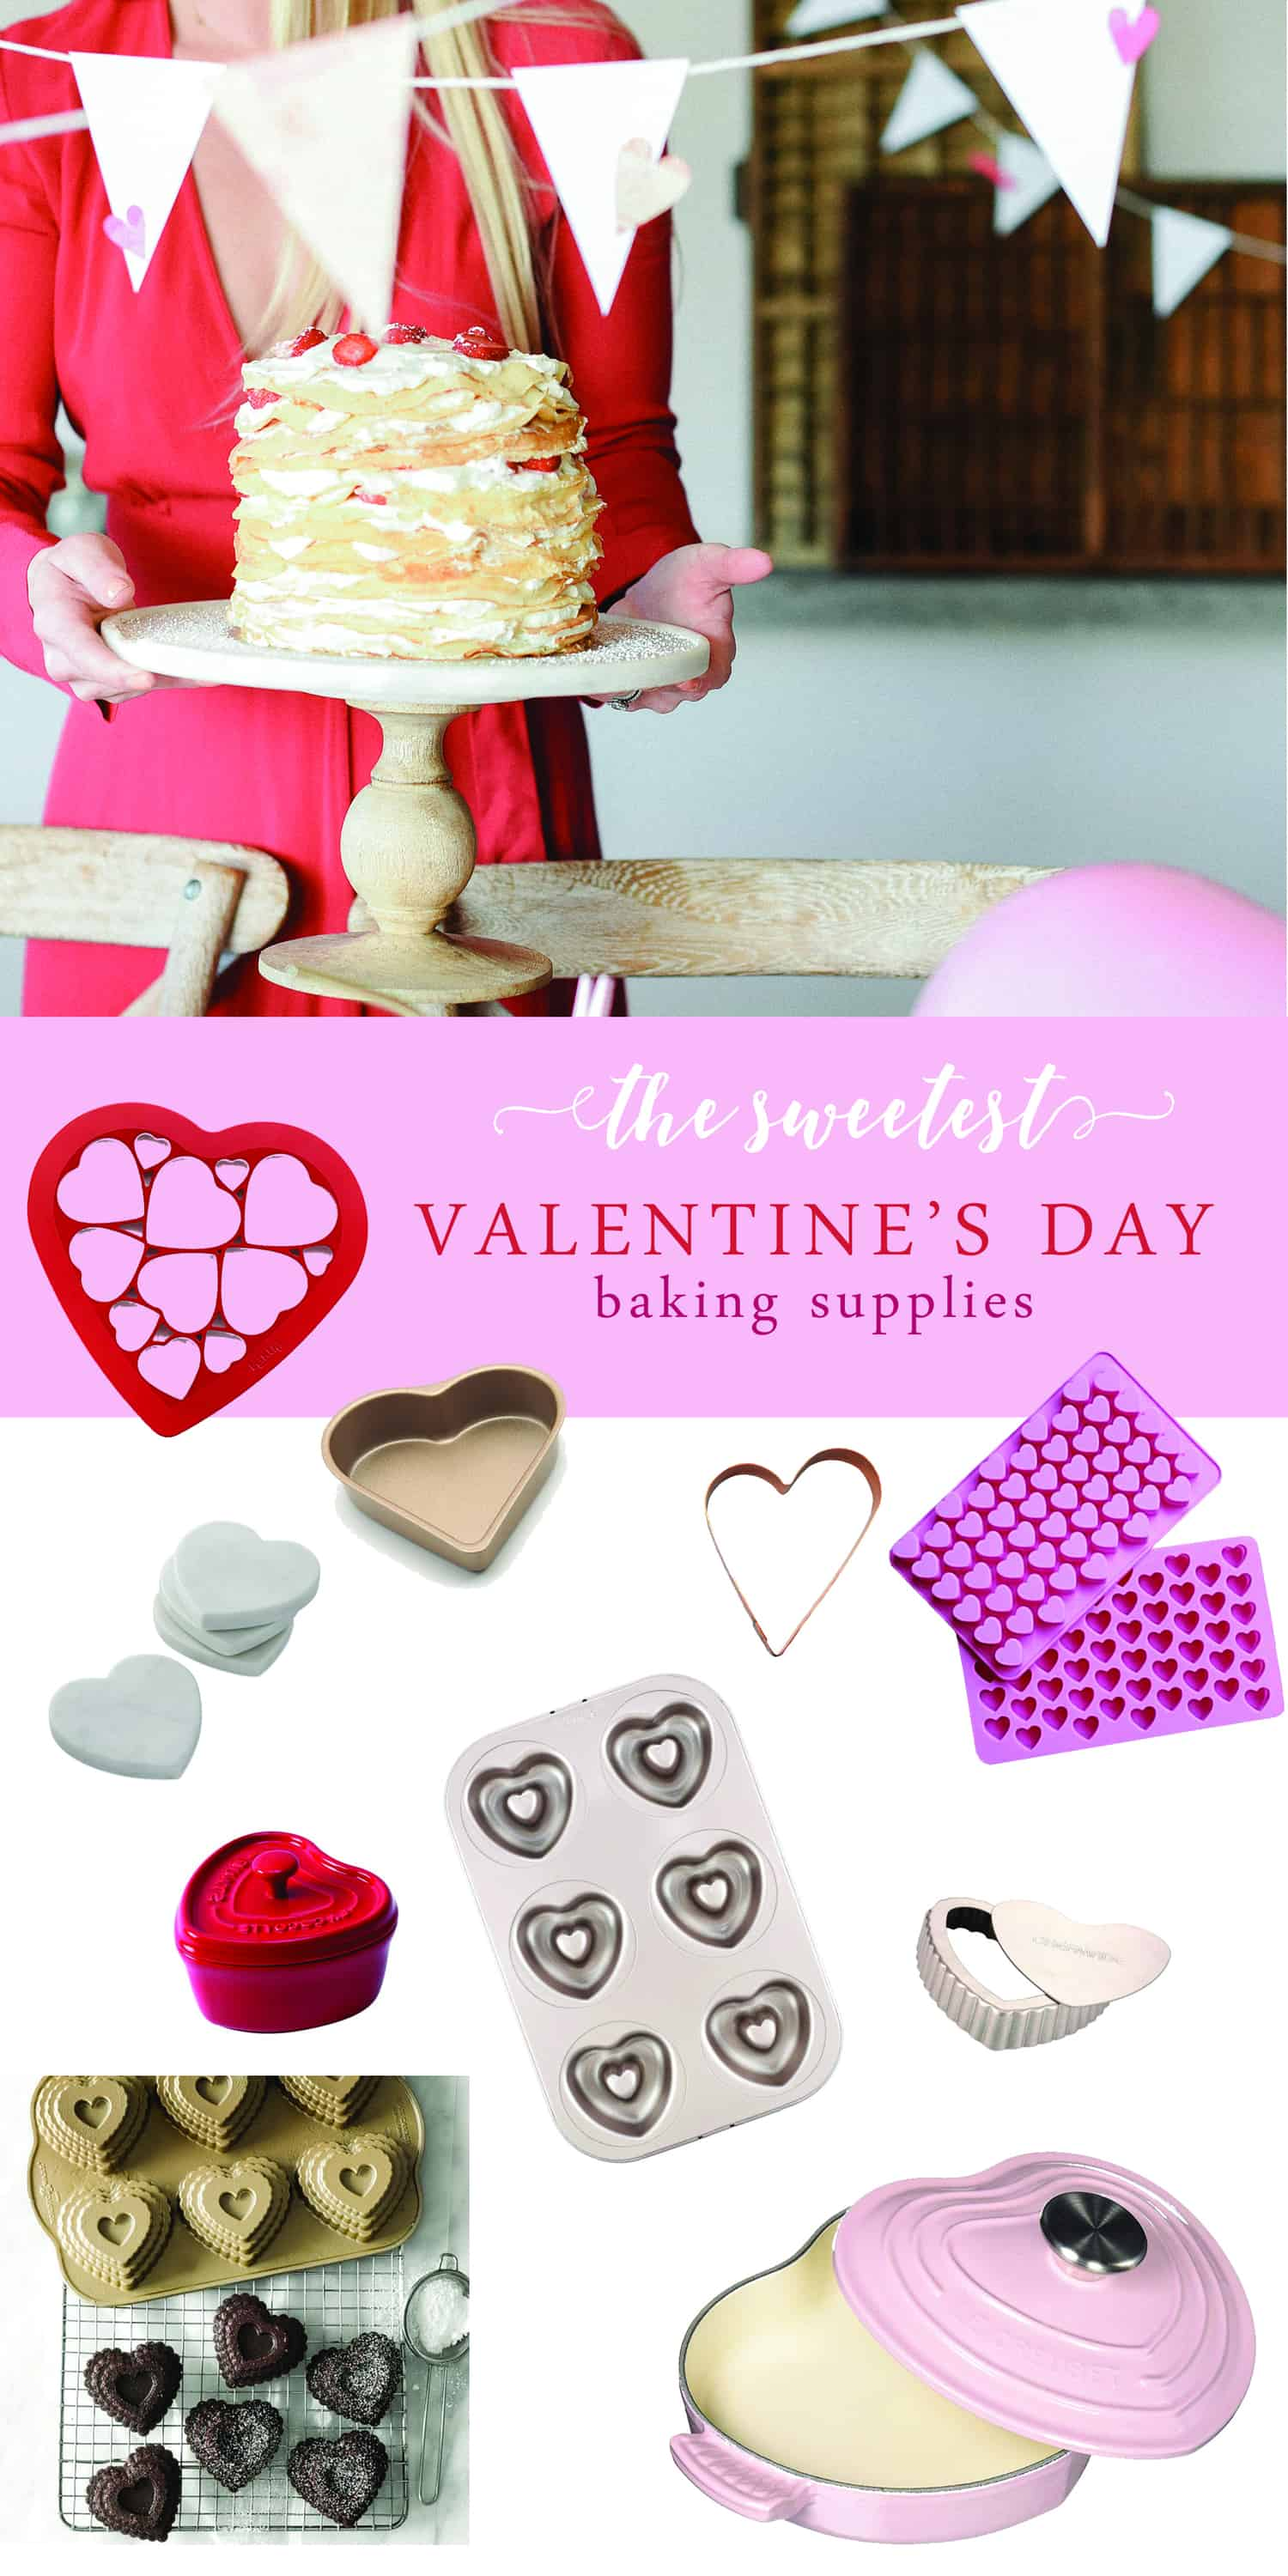 Valentine's Day is a time to celebrate love, and a great excuse to bake! Any time something is in the shape of a heart, it's just that much more special! These Valentine's Day baking supplies are the perfect way to make your Valentine's Day extra sweet this year!